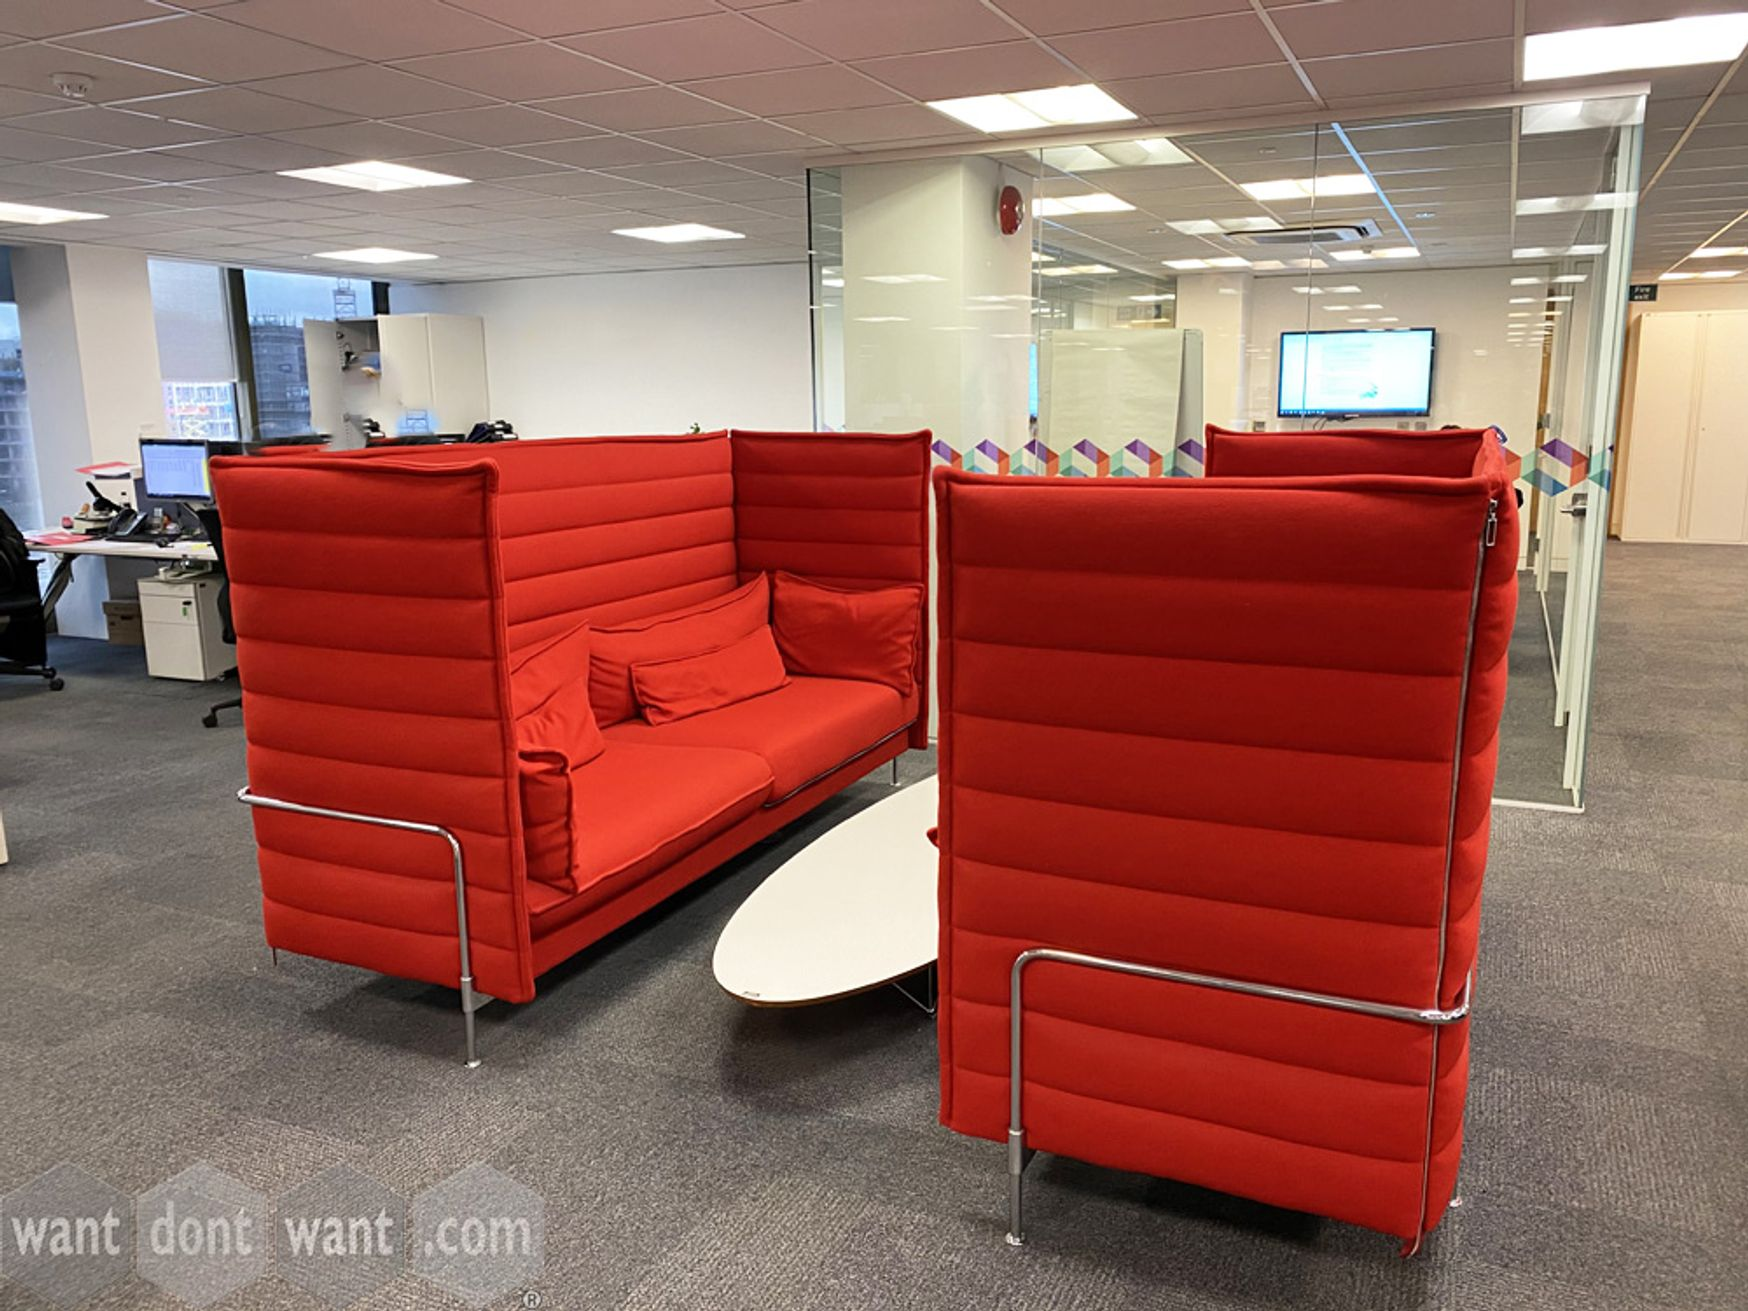 New advert just live, many high-end items for sale. Click photo to view full gallery. Includes used Vitra 'Alcove' high-back 3-seat sofas